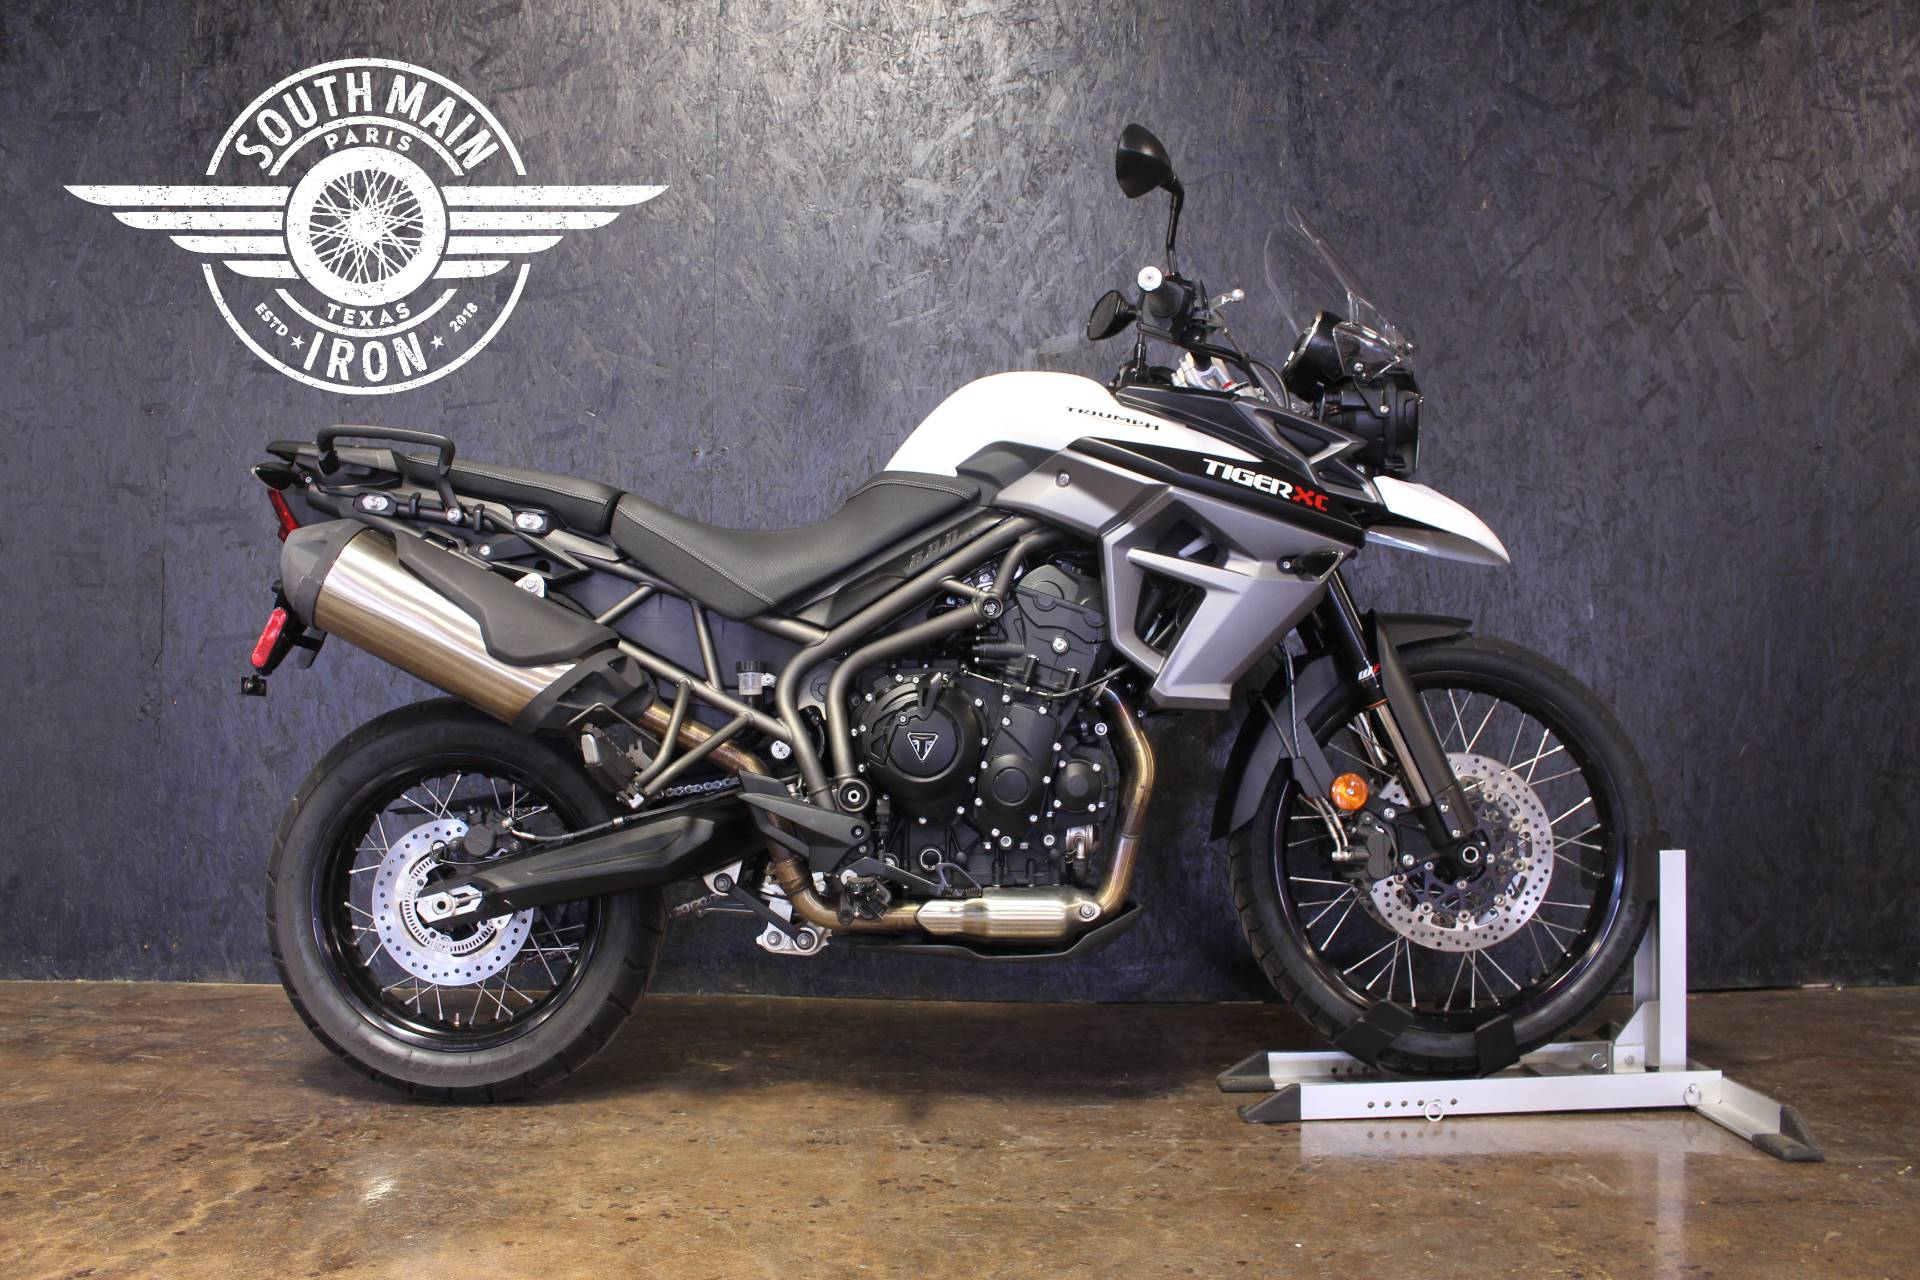 2016 Triumph Tiger 800 XC in Paris, Texas - Photo 1